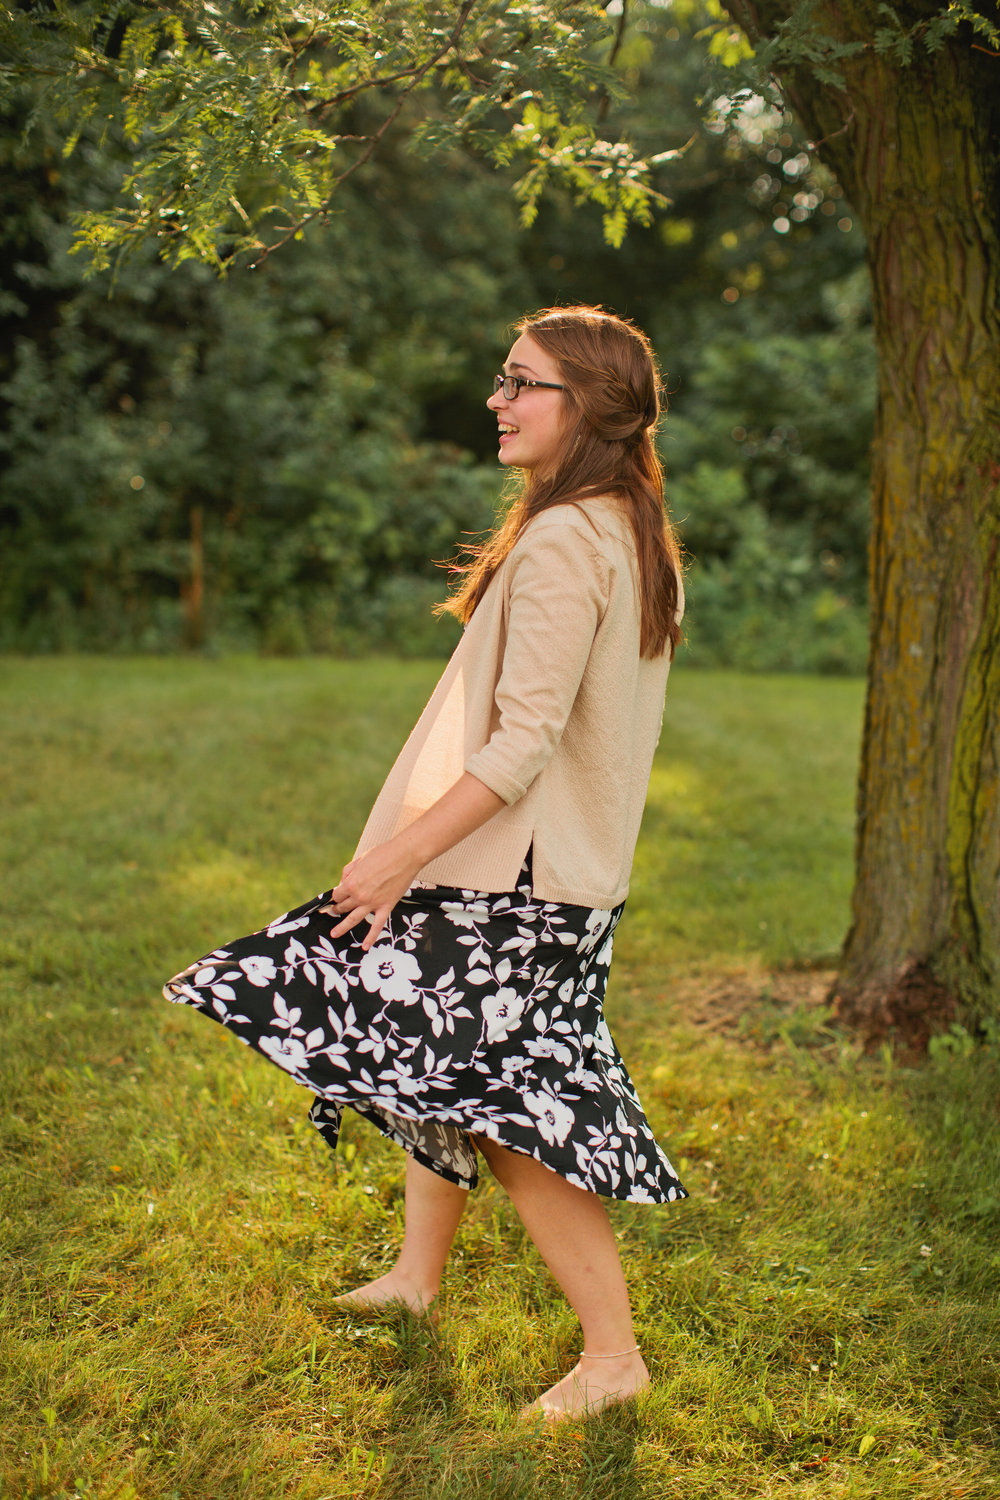 senior girl dancing in dress and cardigan senior photos Iowa